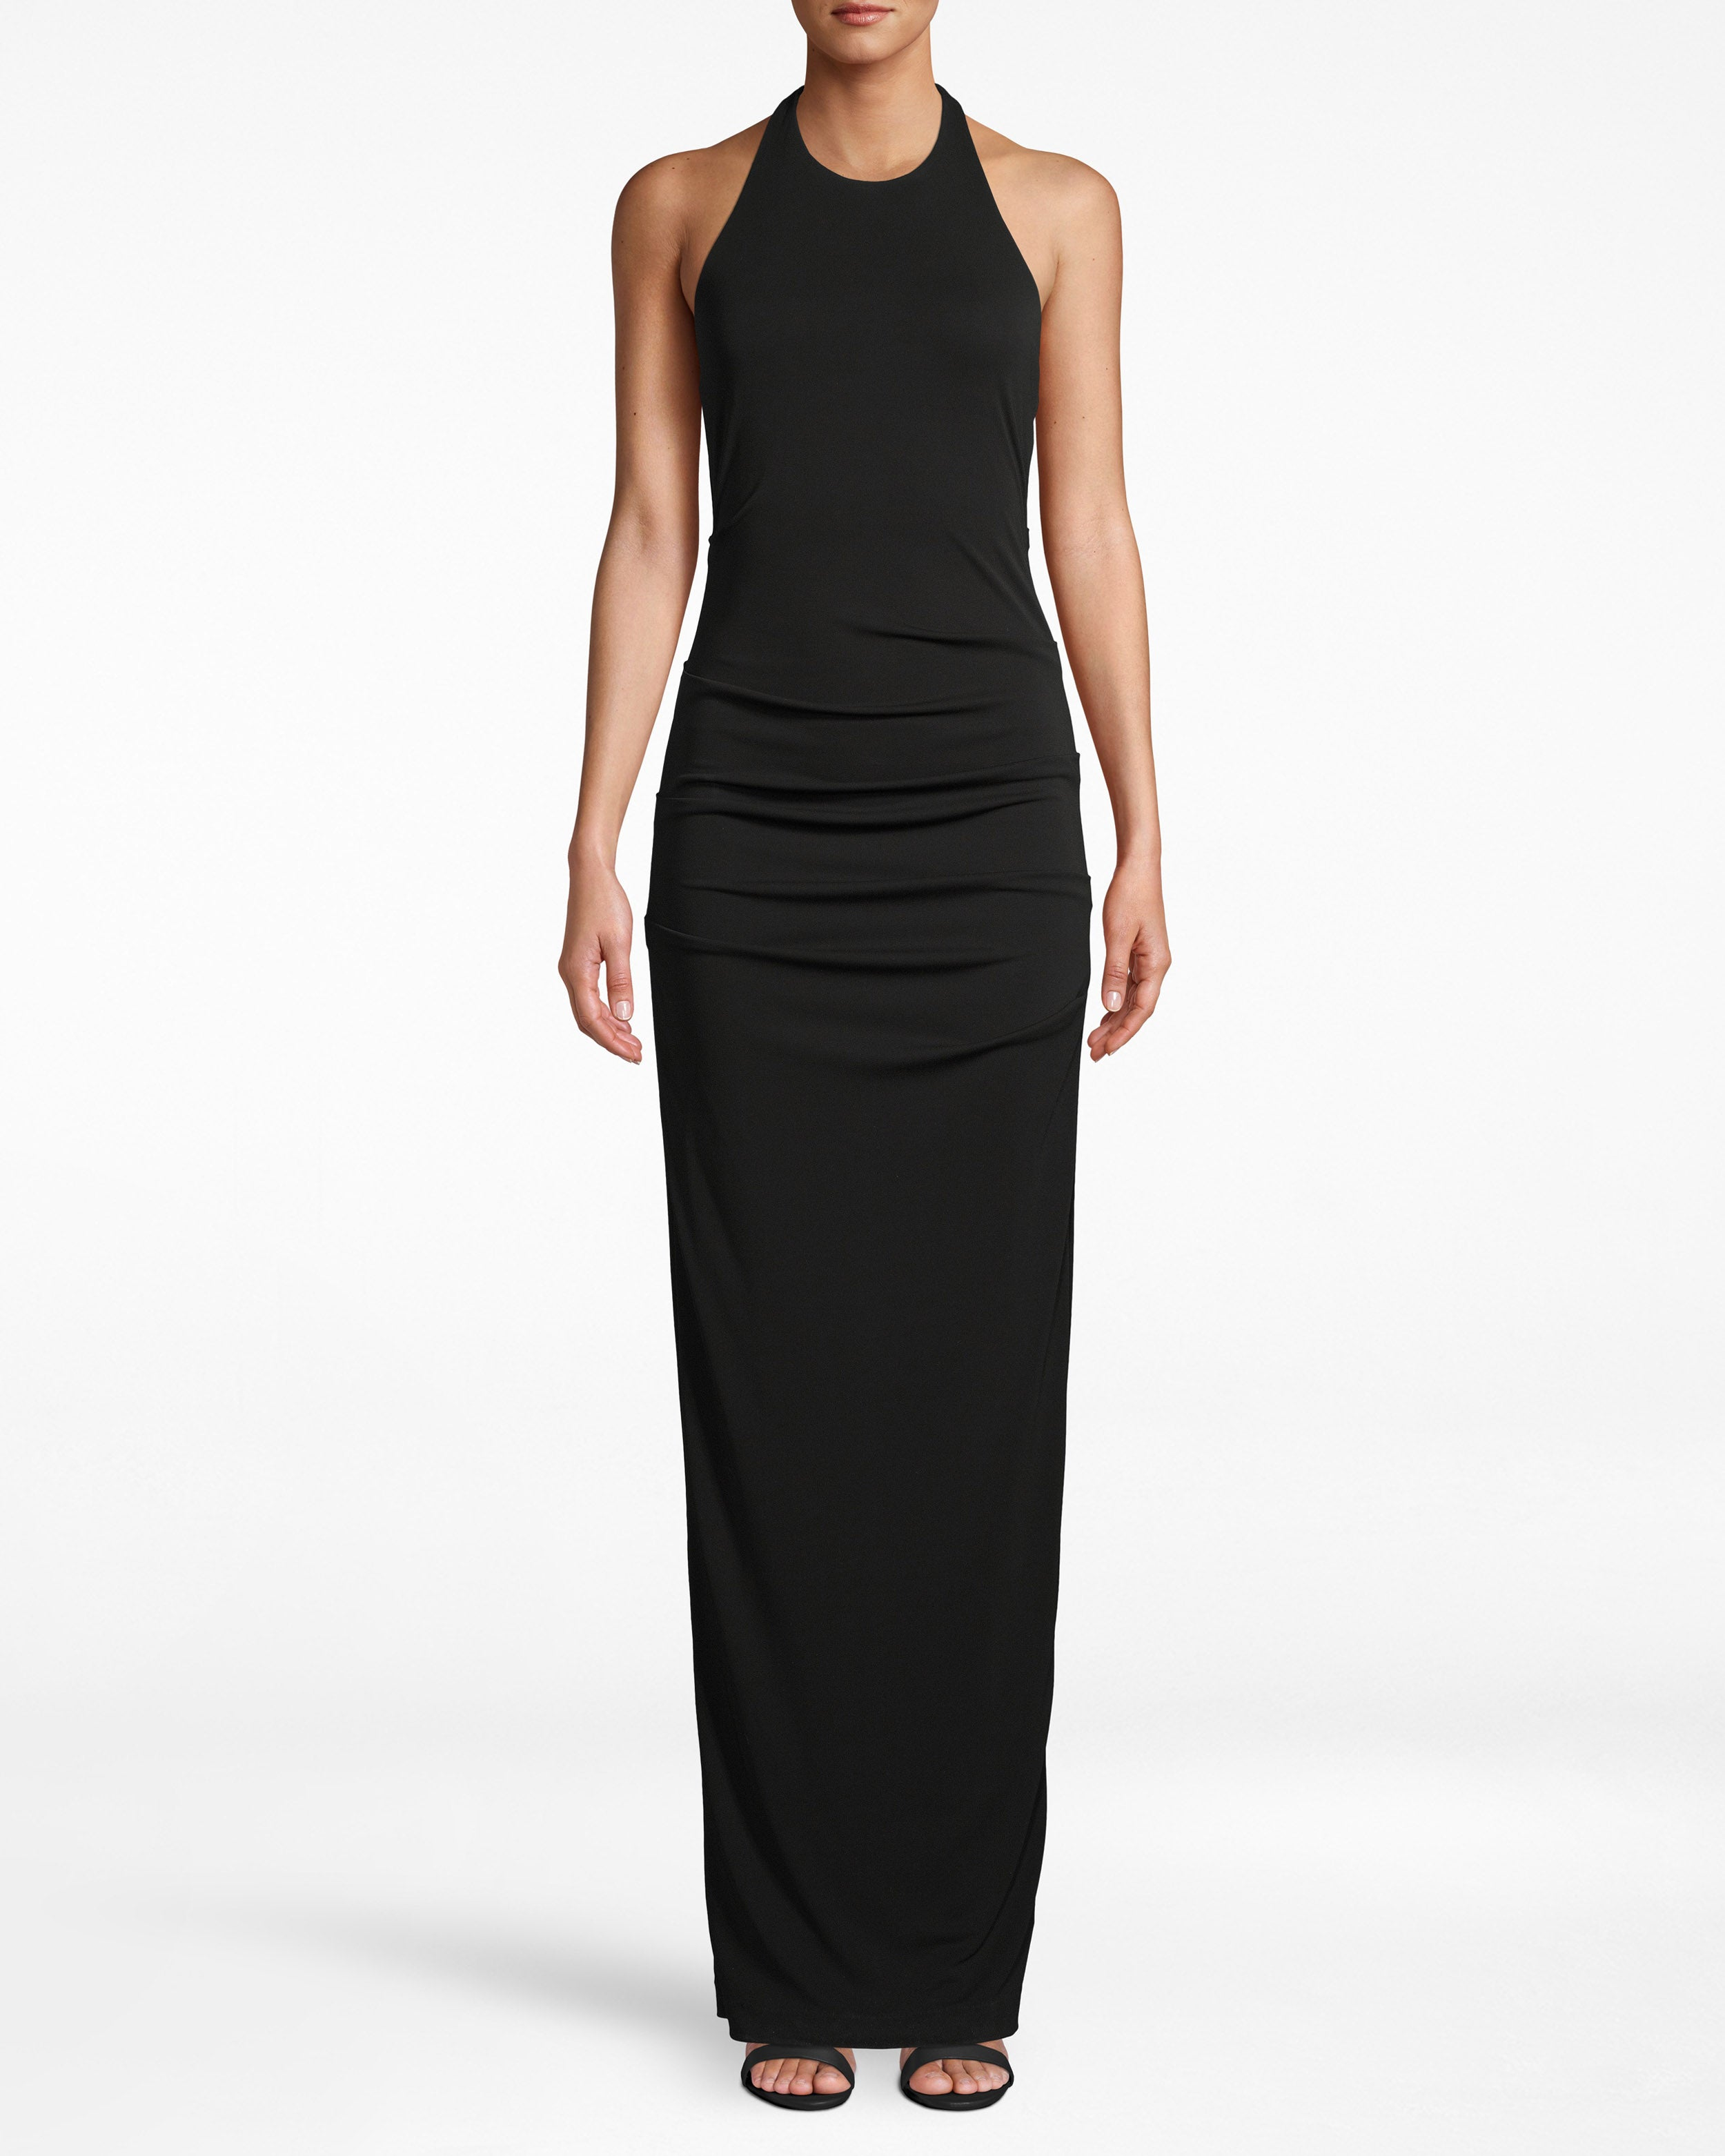 nicole miller stretchy matte jersey adel gown in black | polyester/spandex/acetate | size 0